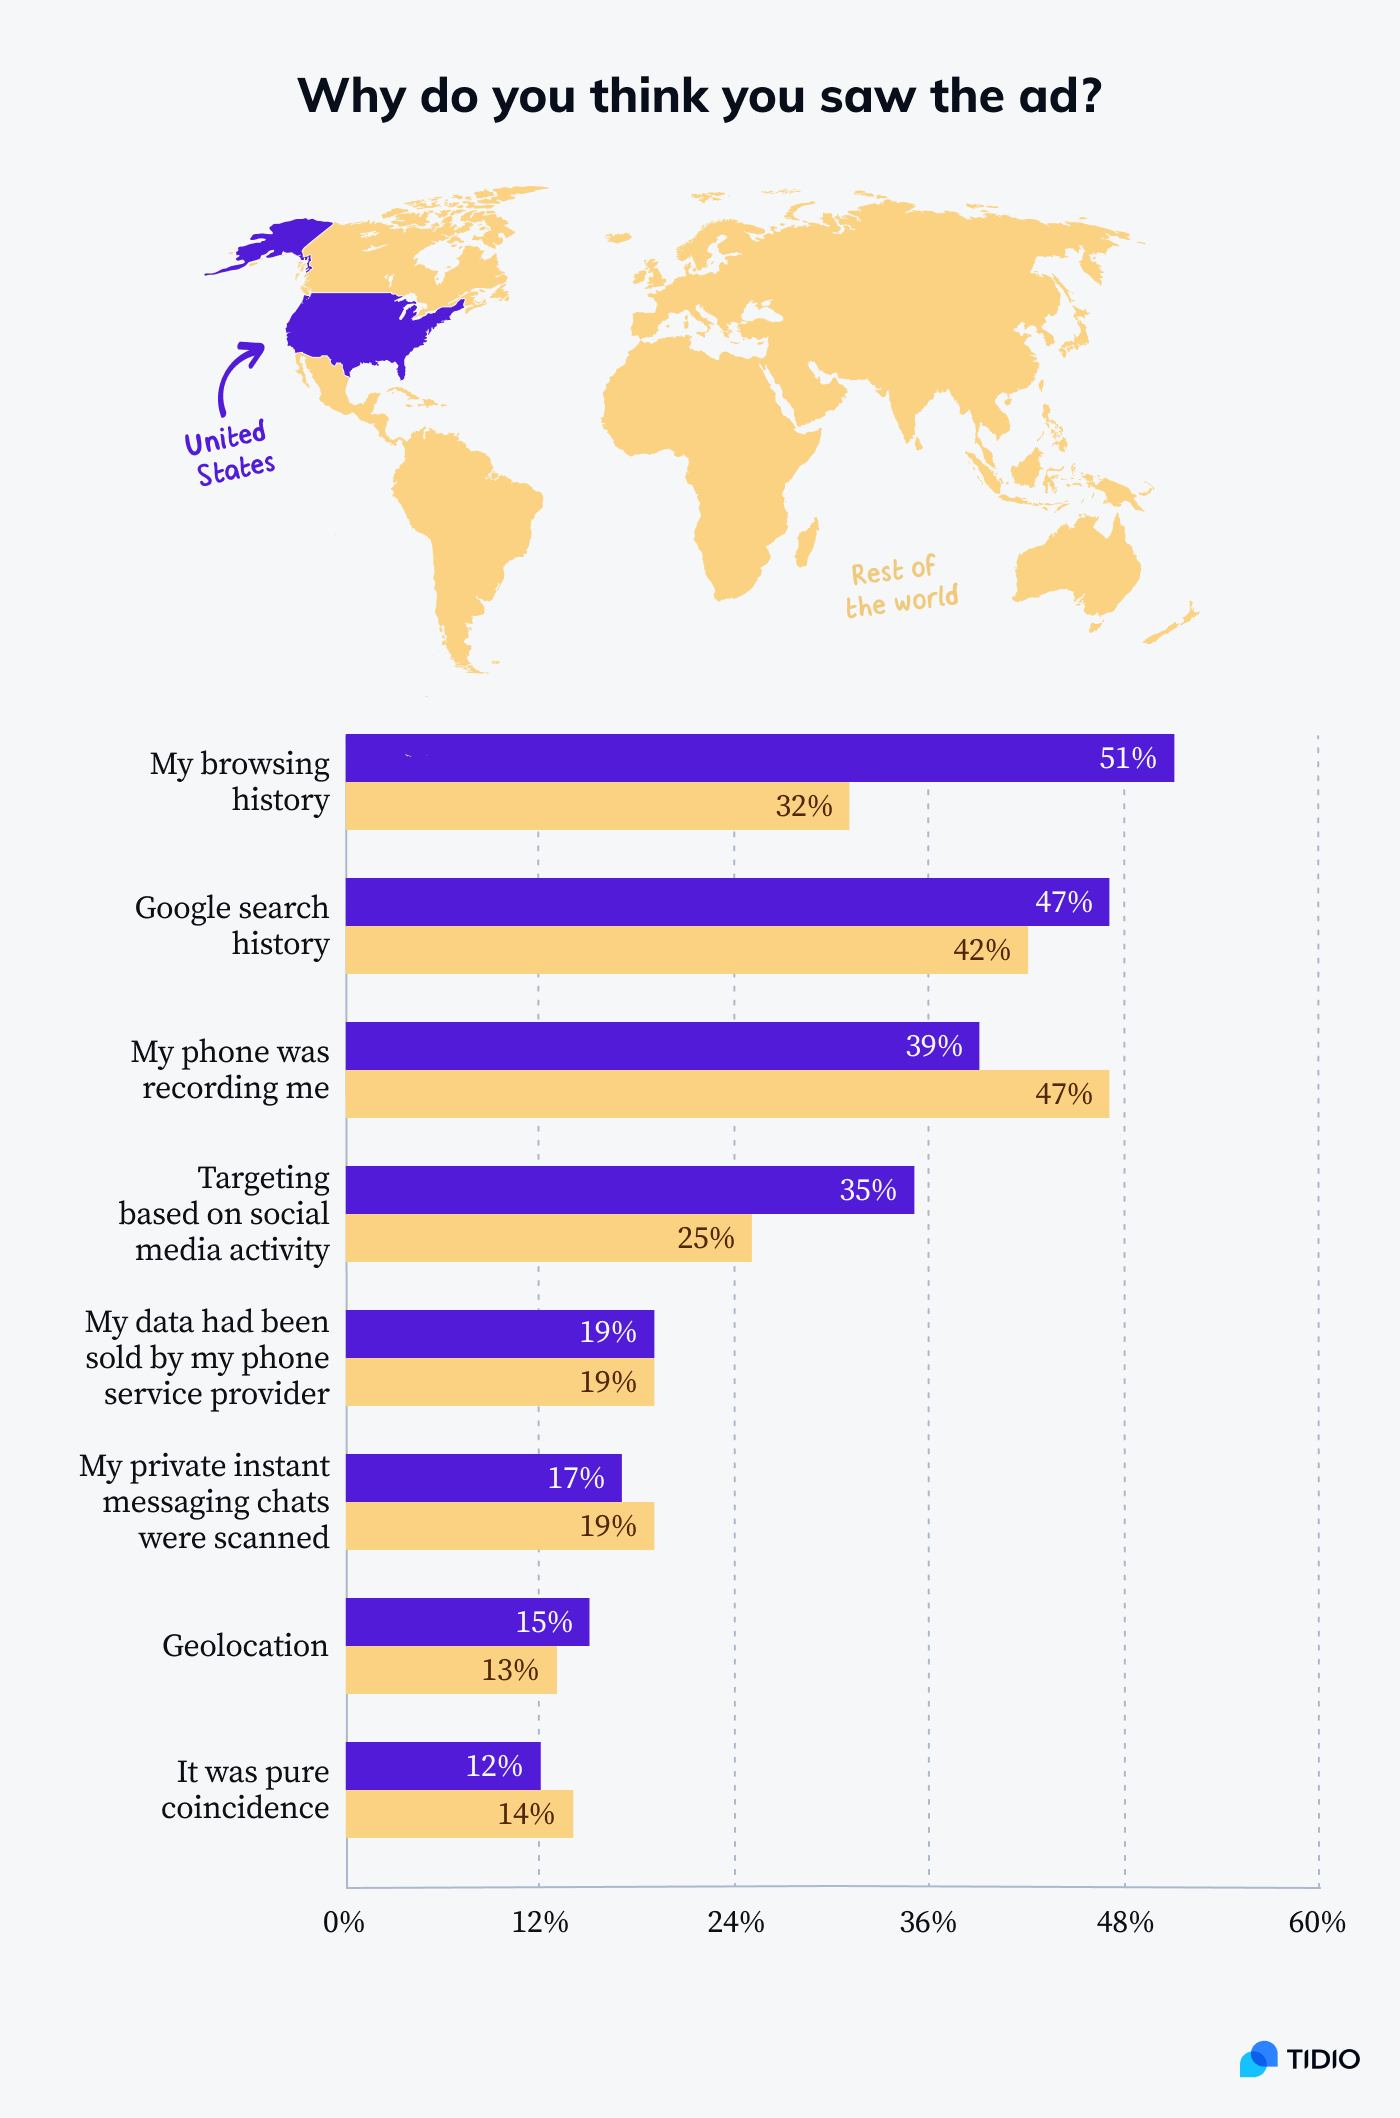 Different reasons for advertisements to display according to US respondents and the rest of the world